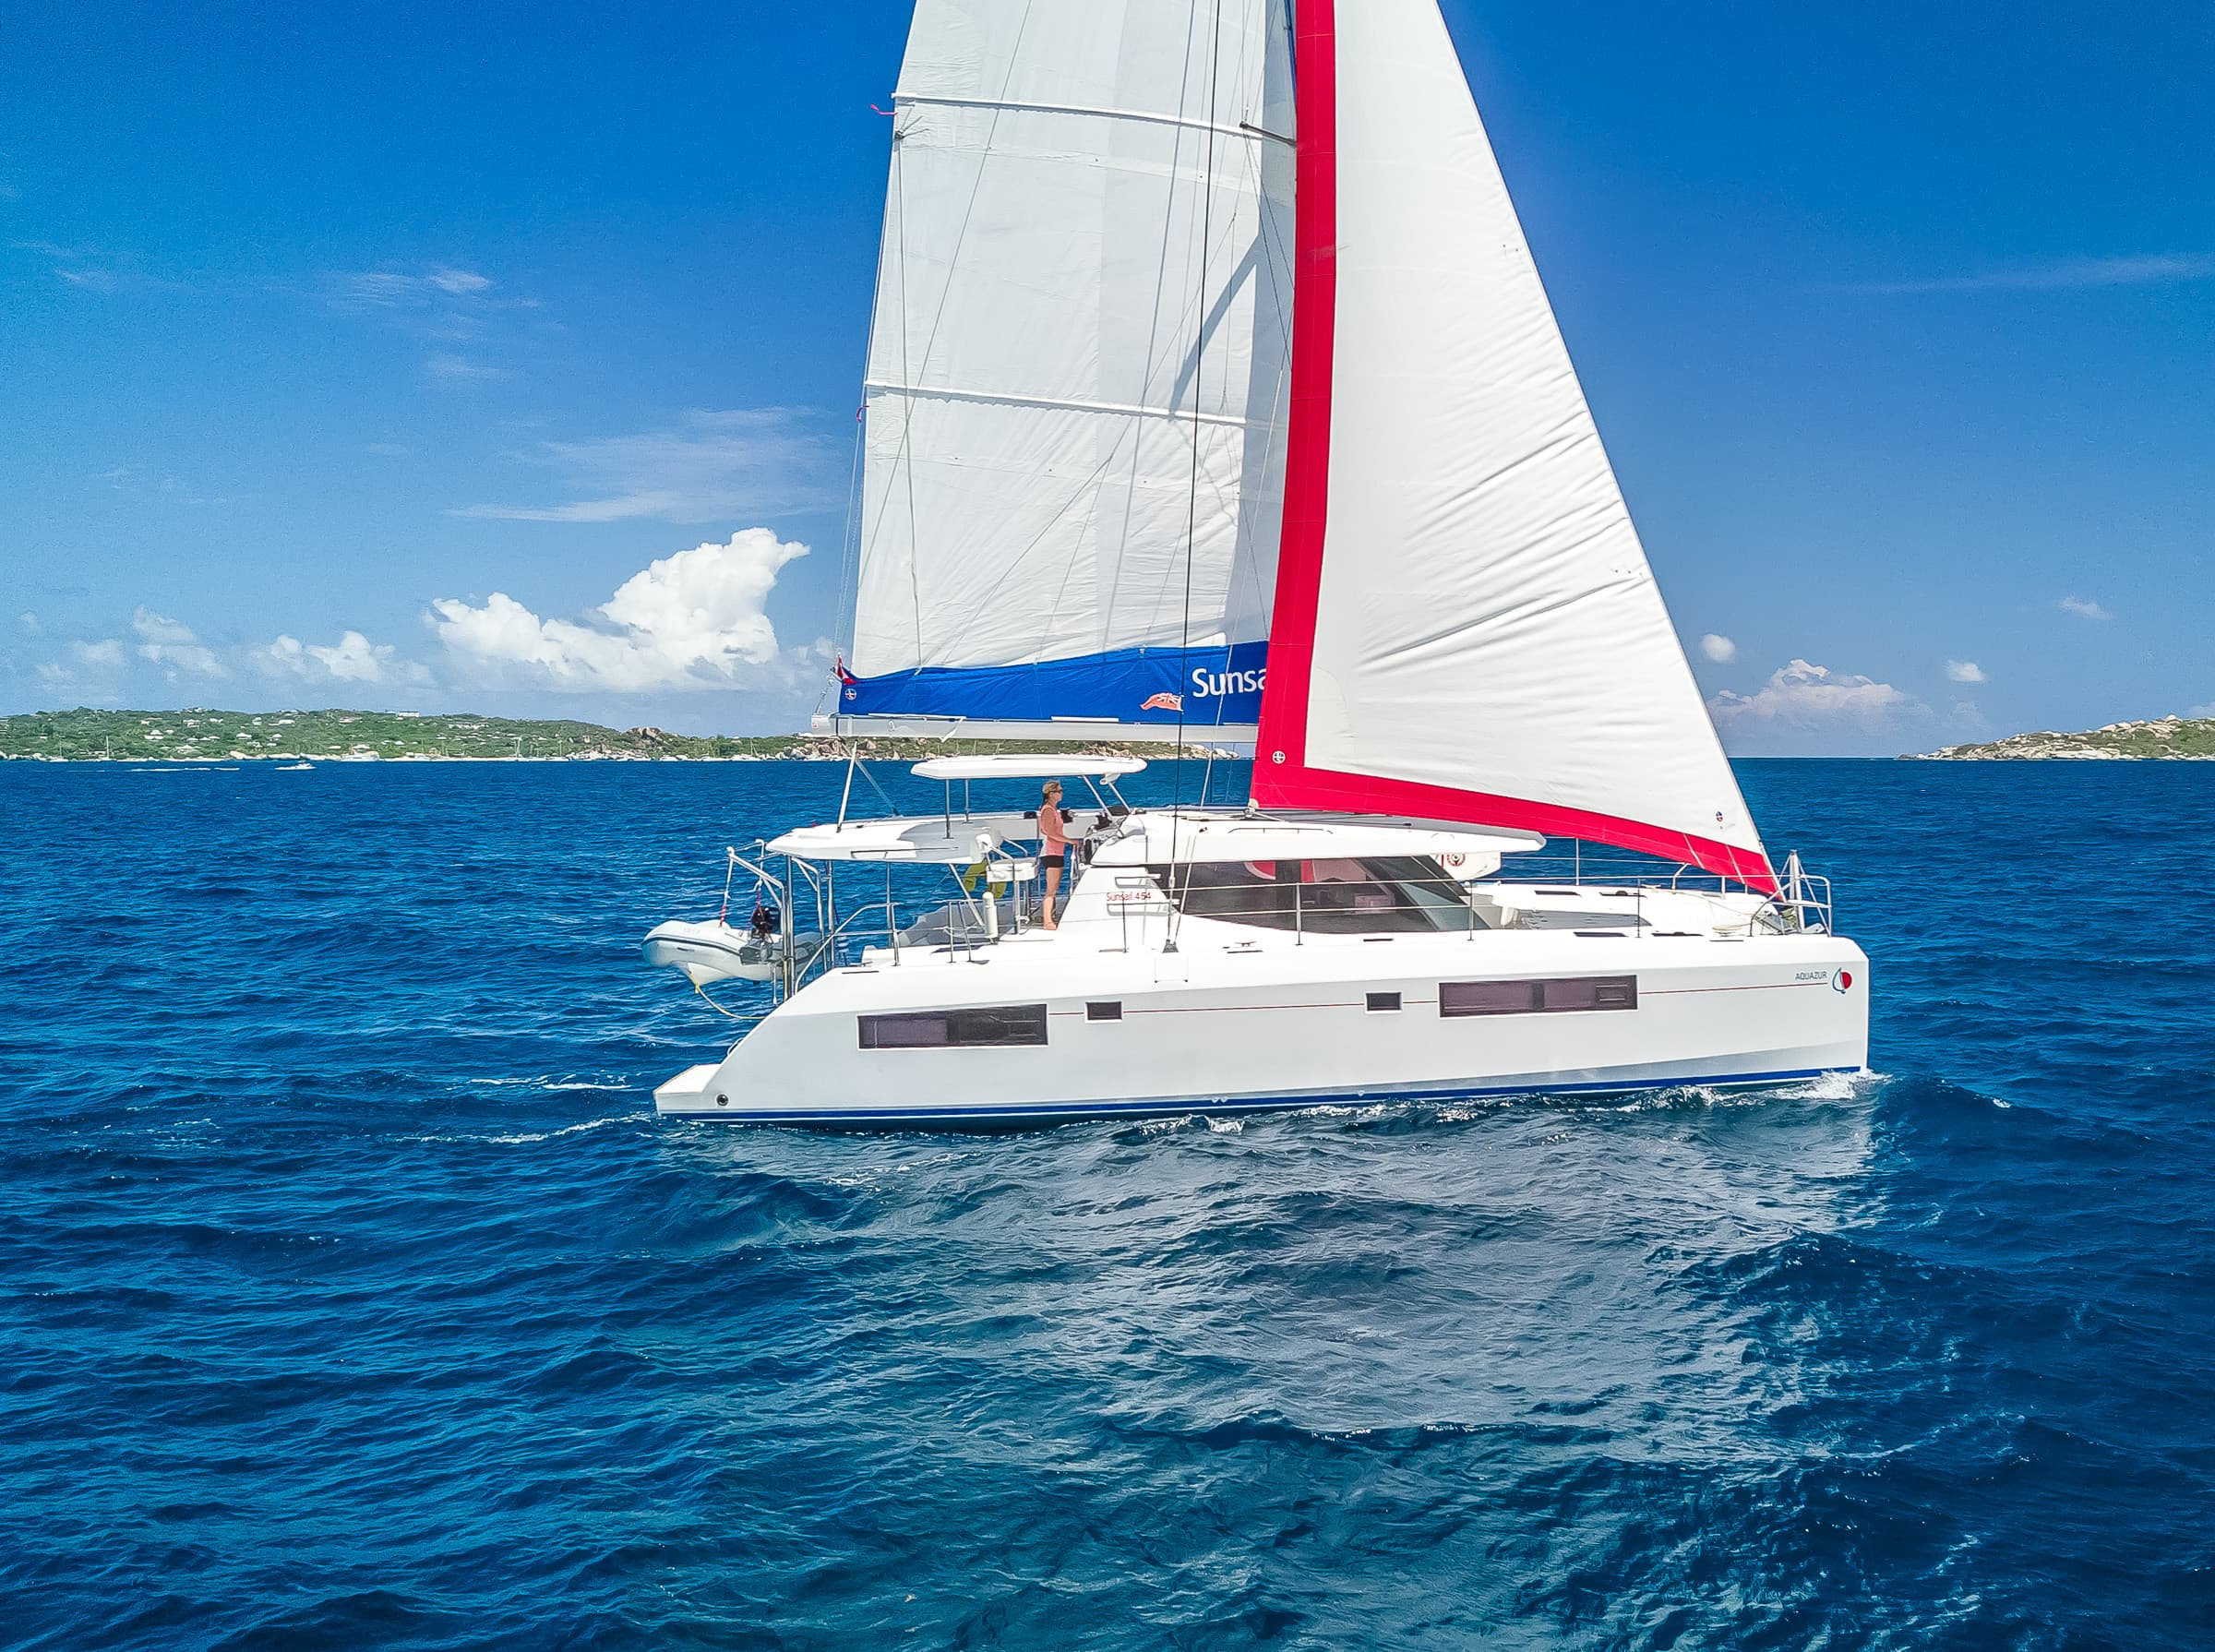 Sail the BVI's with The Uncommon Caribbean x Sunsail BVI's Rum & The Sea Giveaway